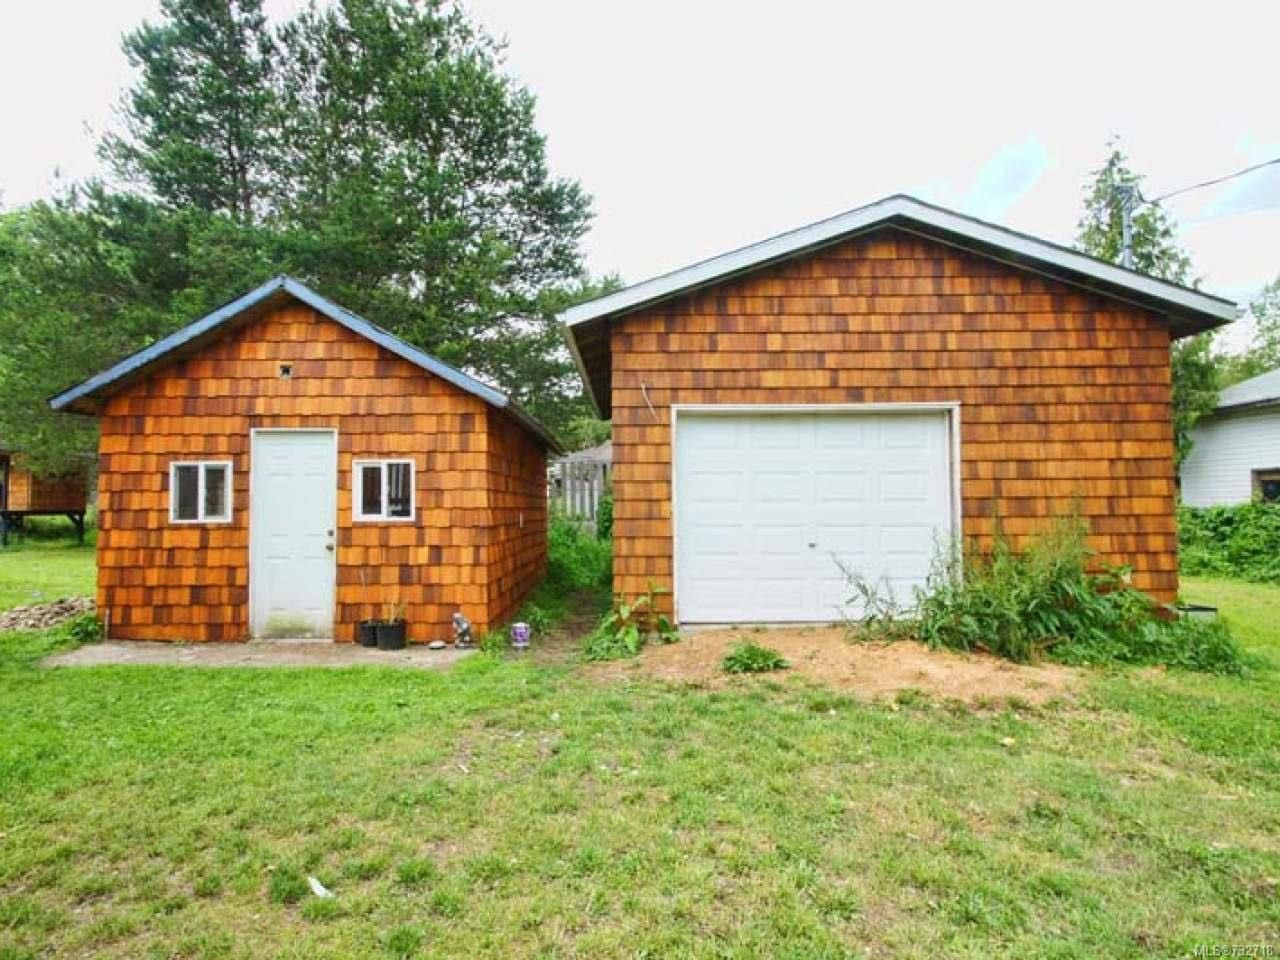 Photo 9: Photos: 921 POPLAR Way in ERRINGTON: PQ Errington/Coombs/Hilliers Manufactured Home for sale (Parksville/Qualicum)  : MLS®# 732718